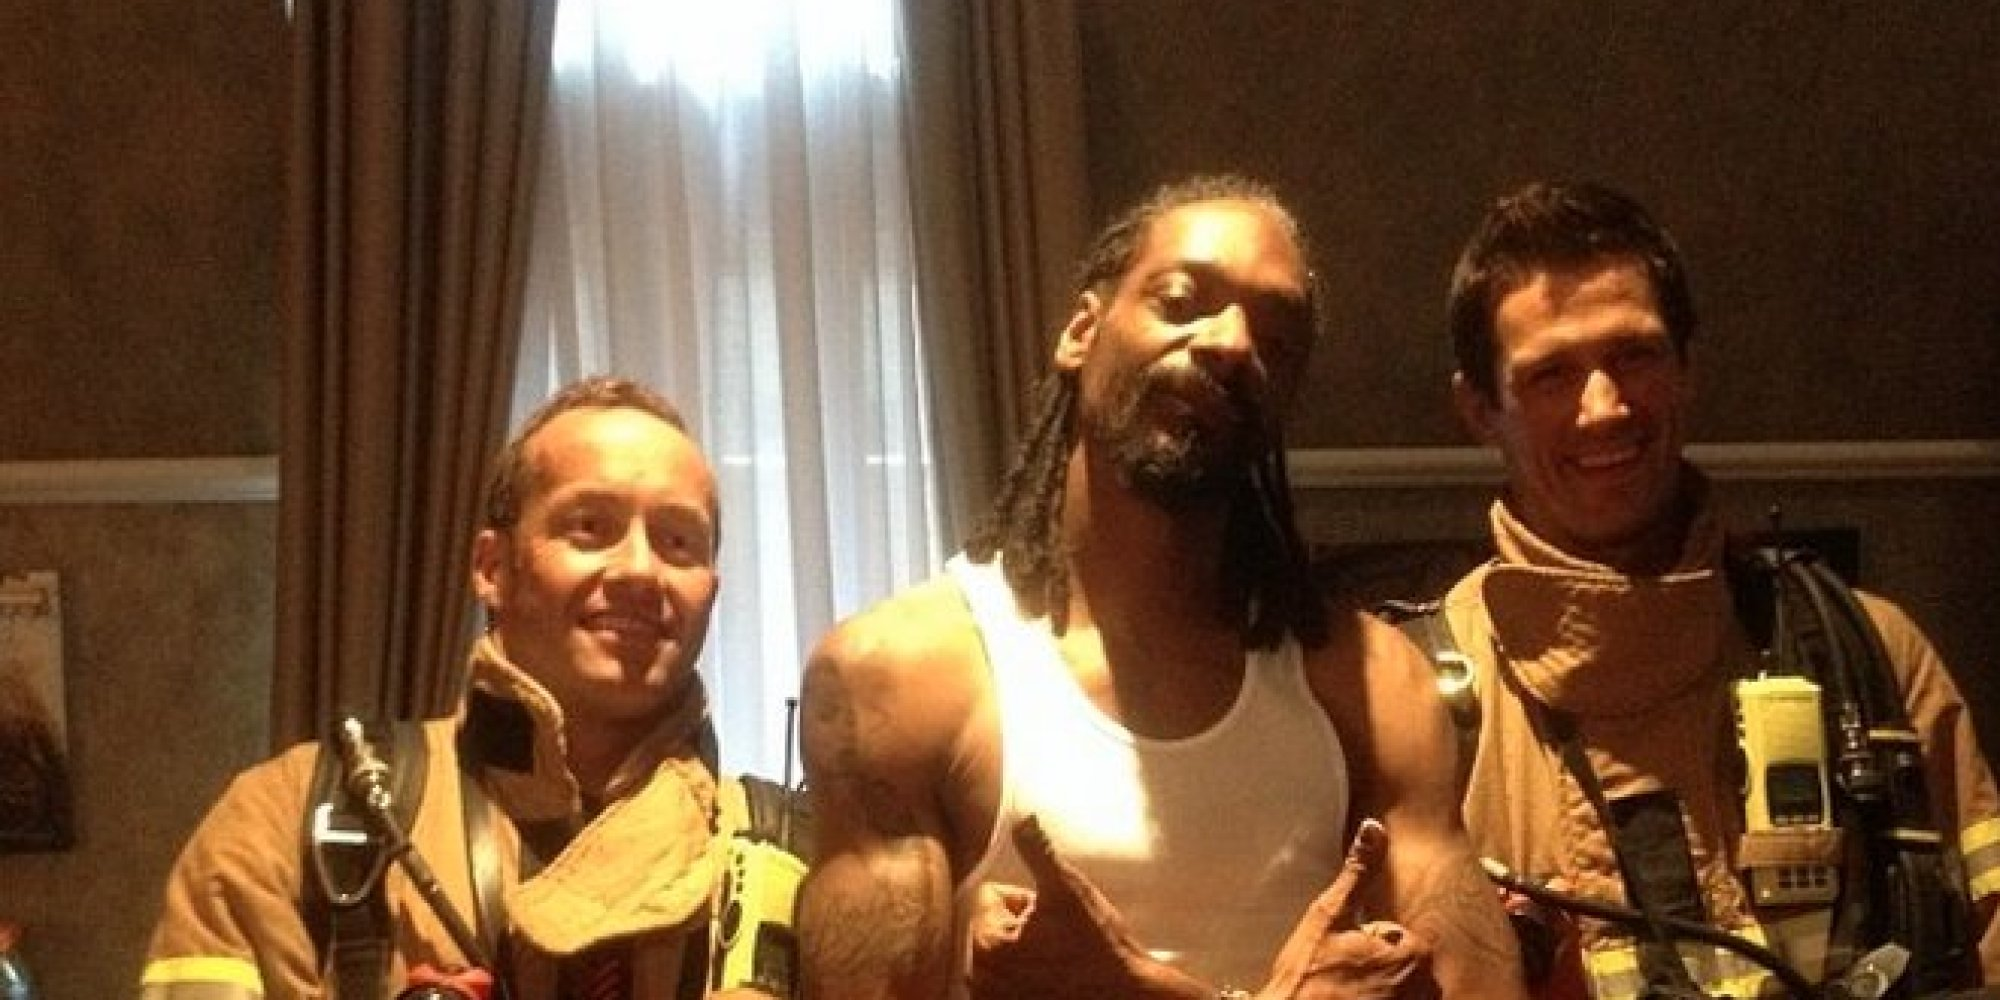 Snoop Dogg Visited By Firefighters After He Sets Off Smoke